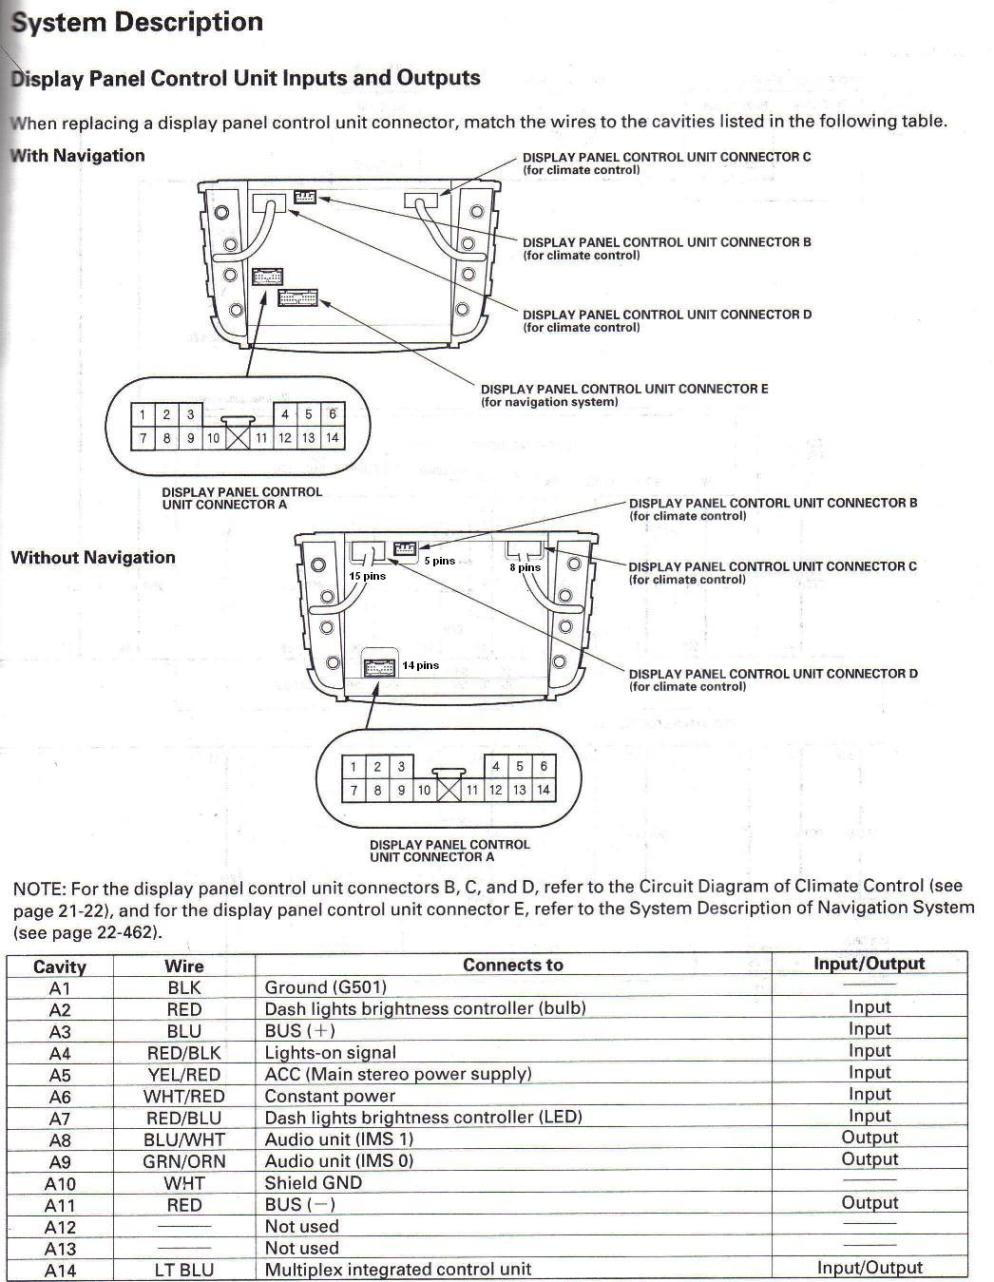 80 lcd_back_70923a59ccef17645f05638f4868cddce552e06b 2005 acura tl wiring diagram 2005 acura tl aftermarket radio 2007 acura tl wiring diagram at crackthecode.co